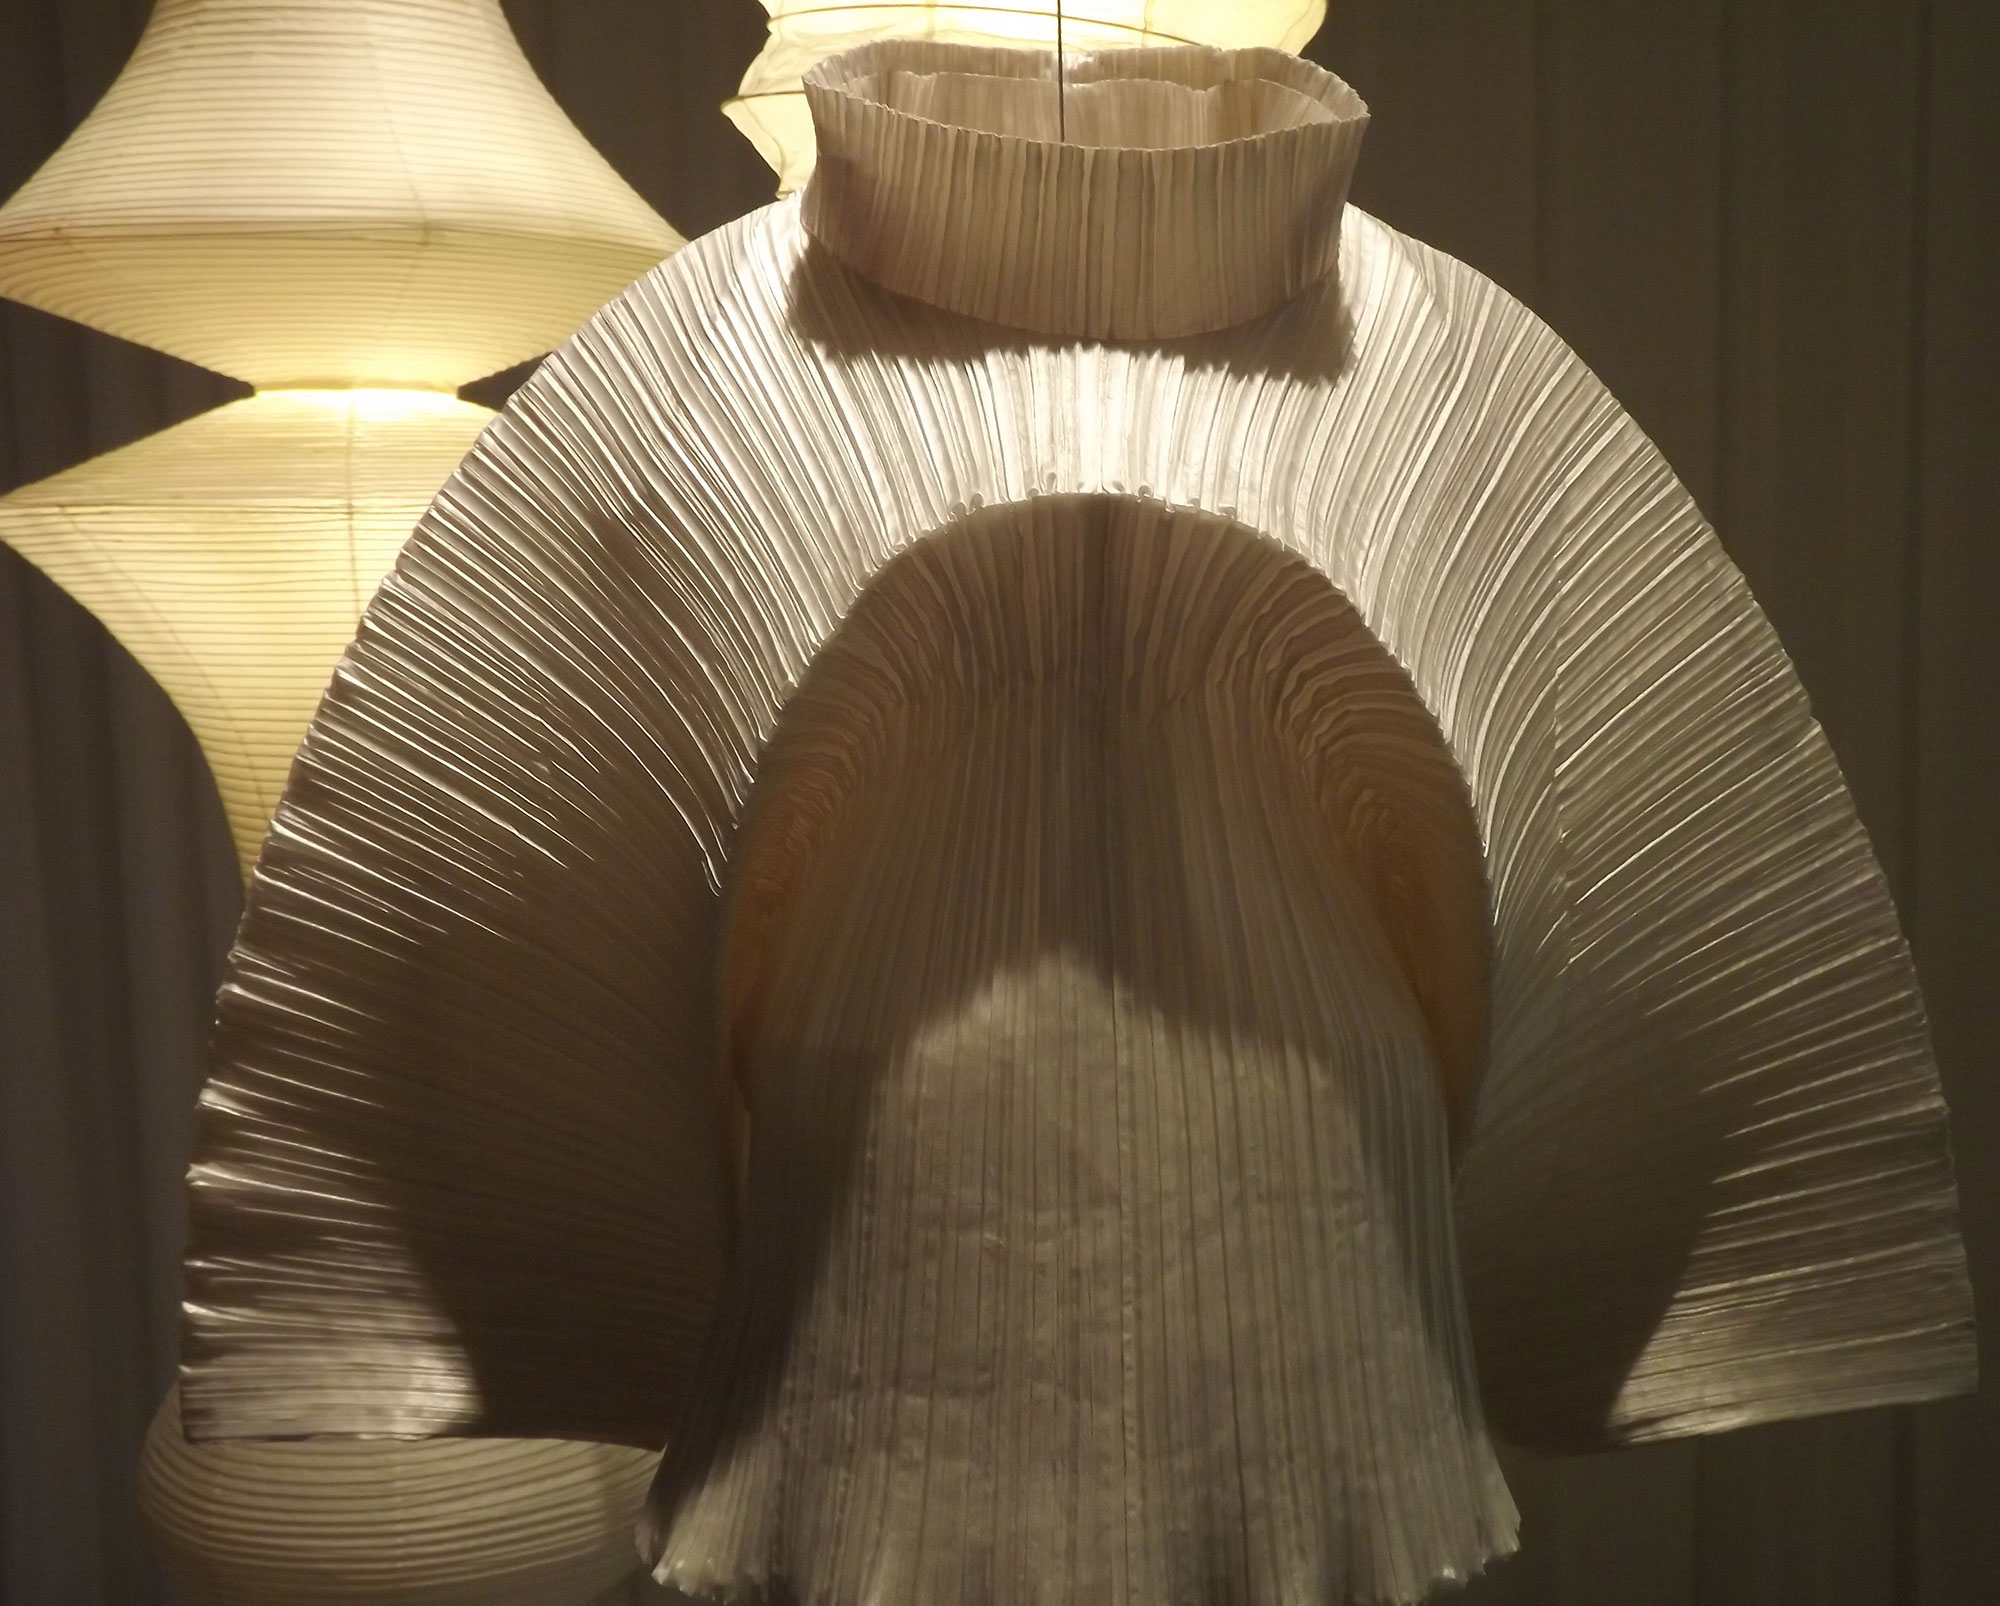 Bamboo Pleats  dress from ' Bamboo ' AW'89 by Issey Miyake.